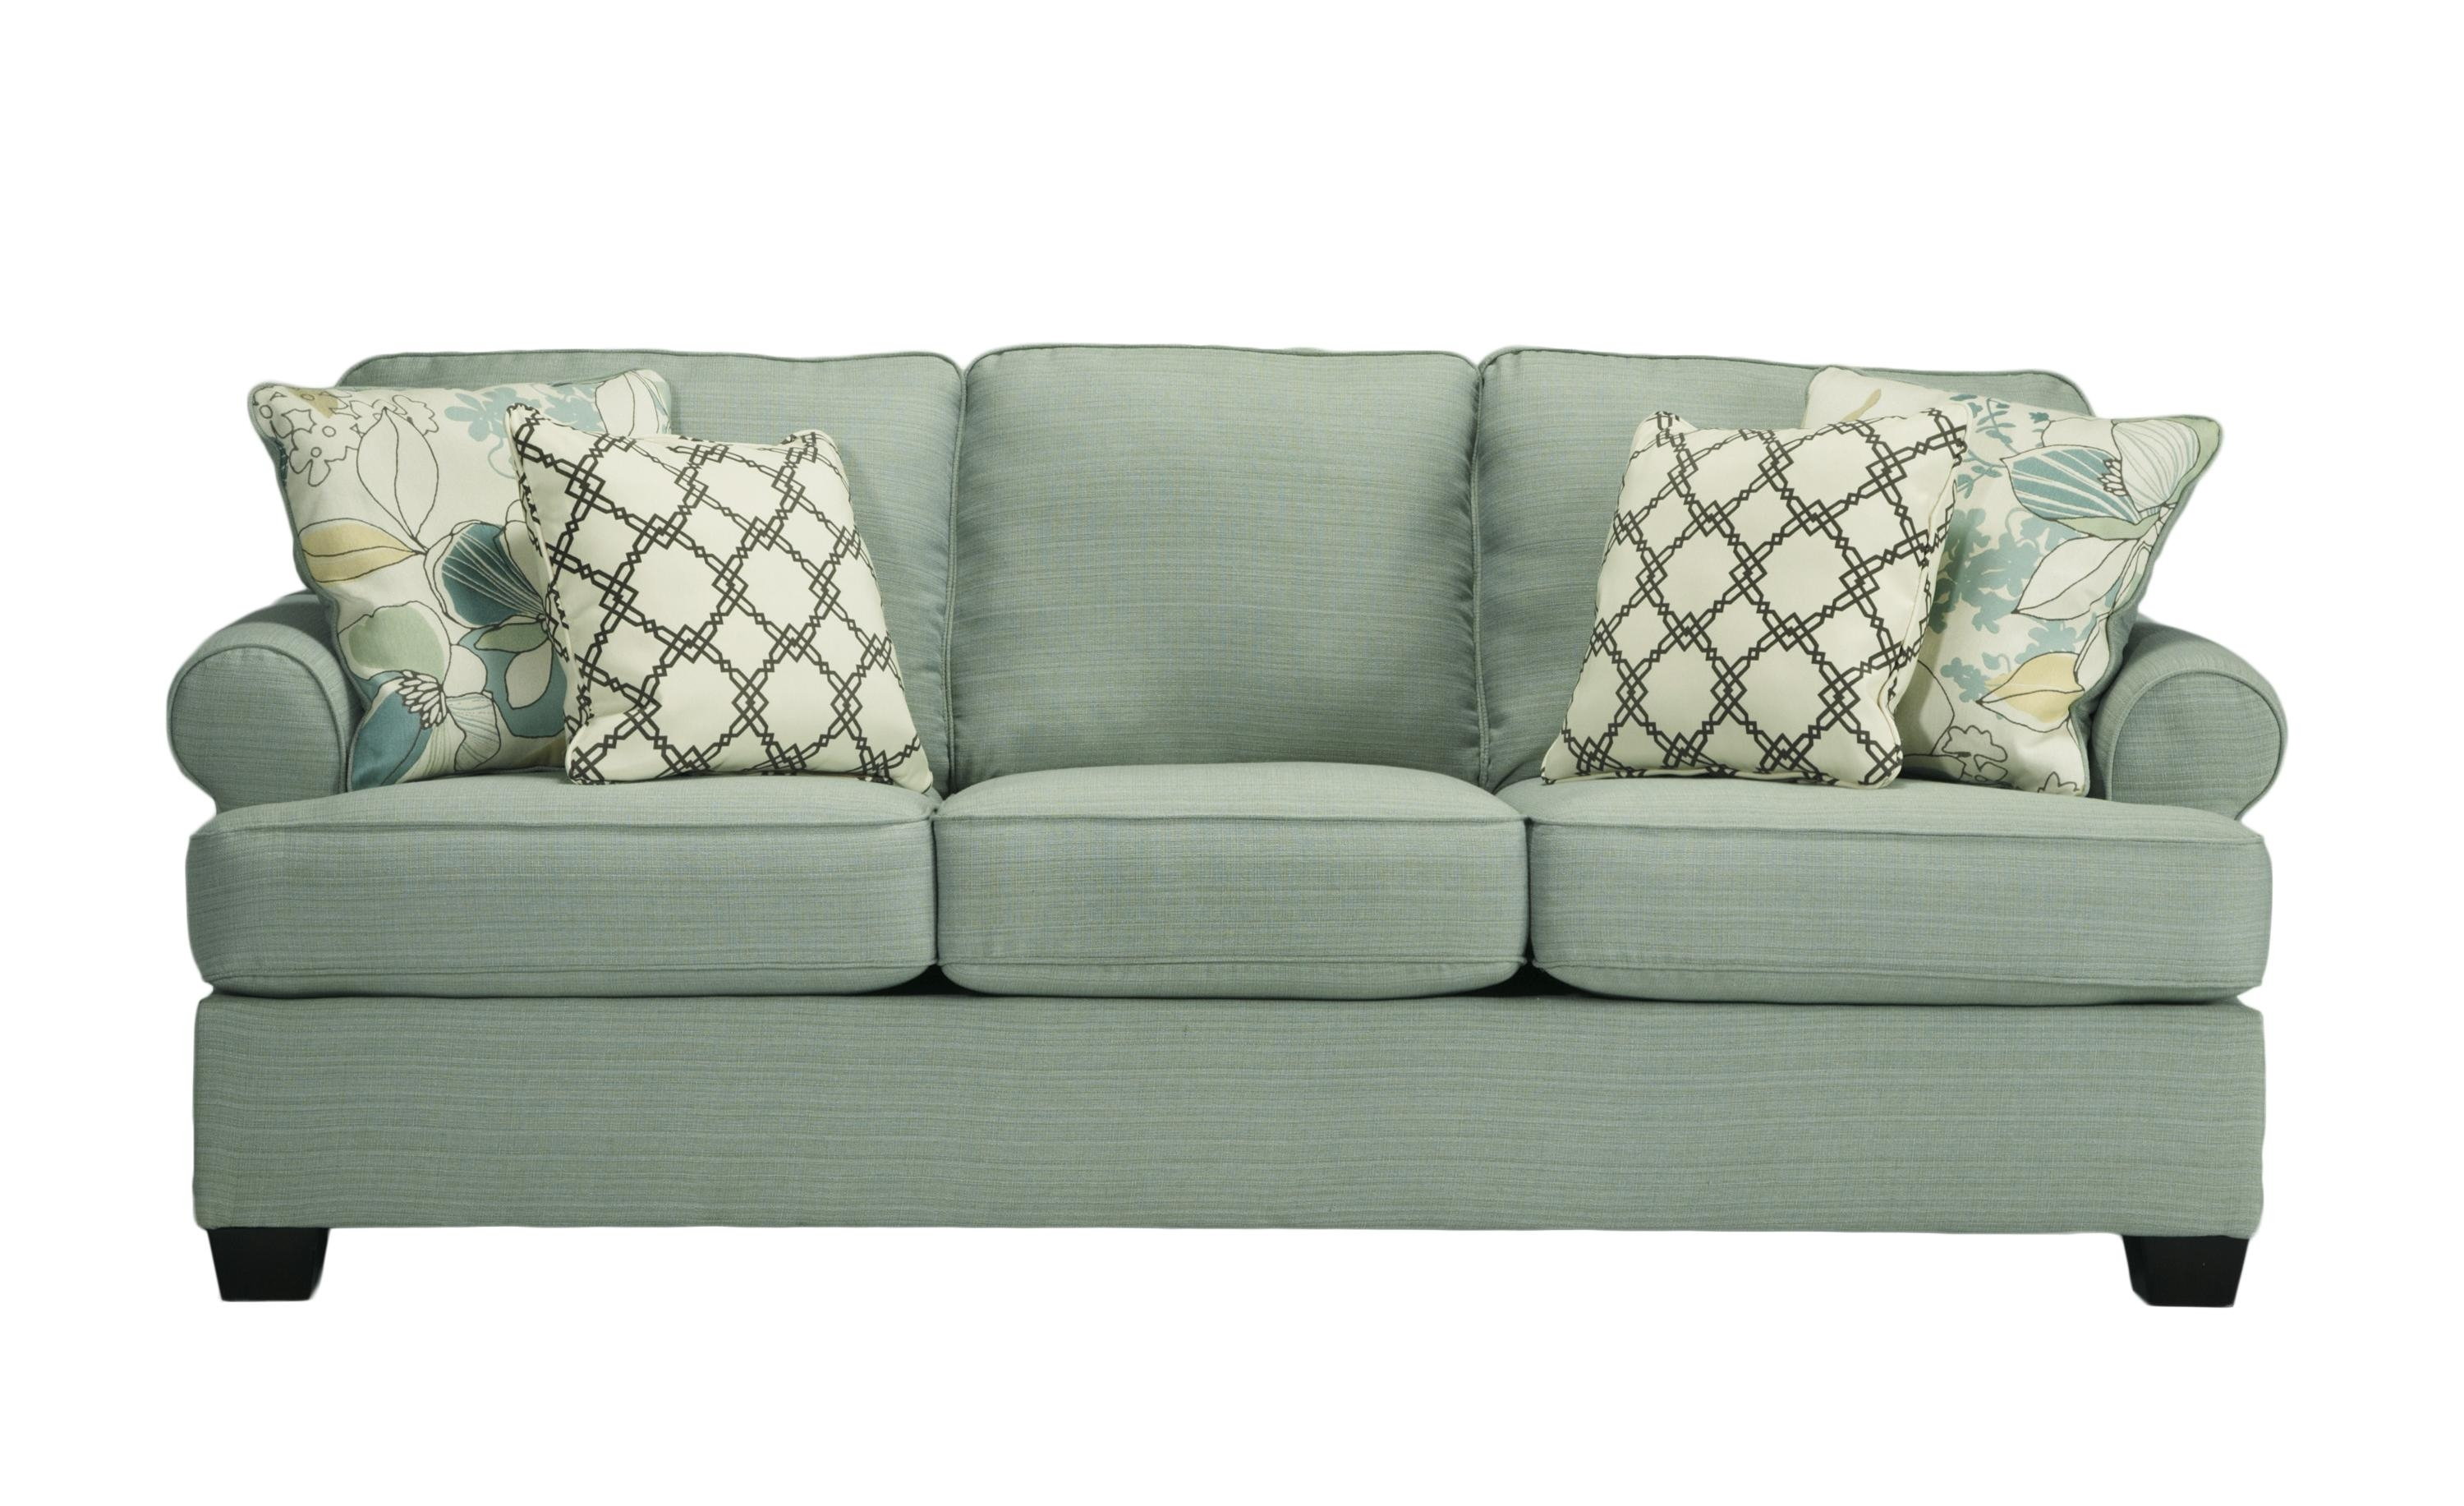 Daystar Contemporary Seafoam Fabric Sofa | Living Rooms | The Intended For Seafoam Sofas (View 11 of 20)